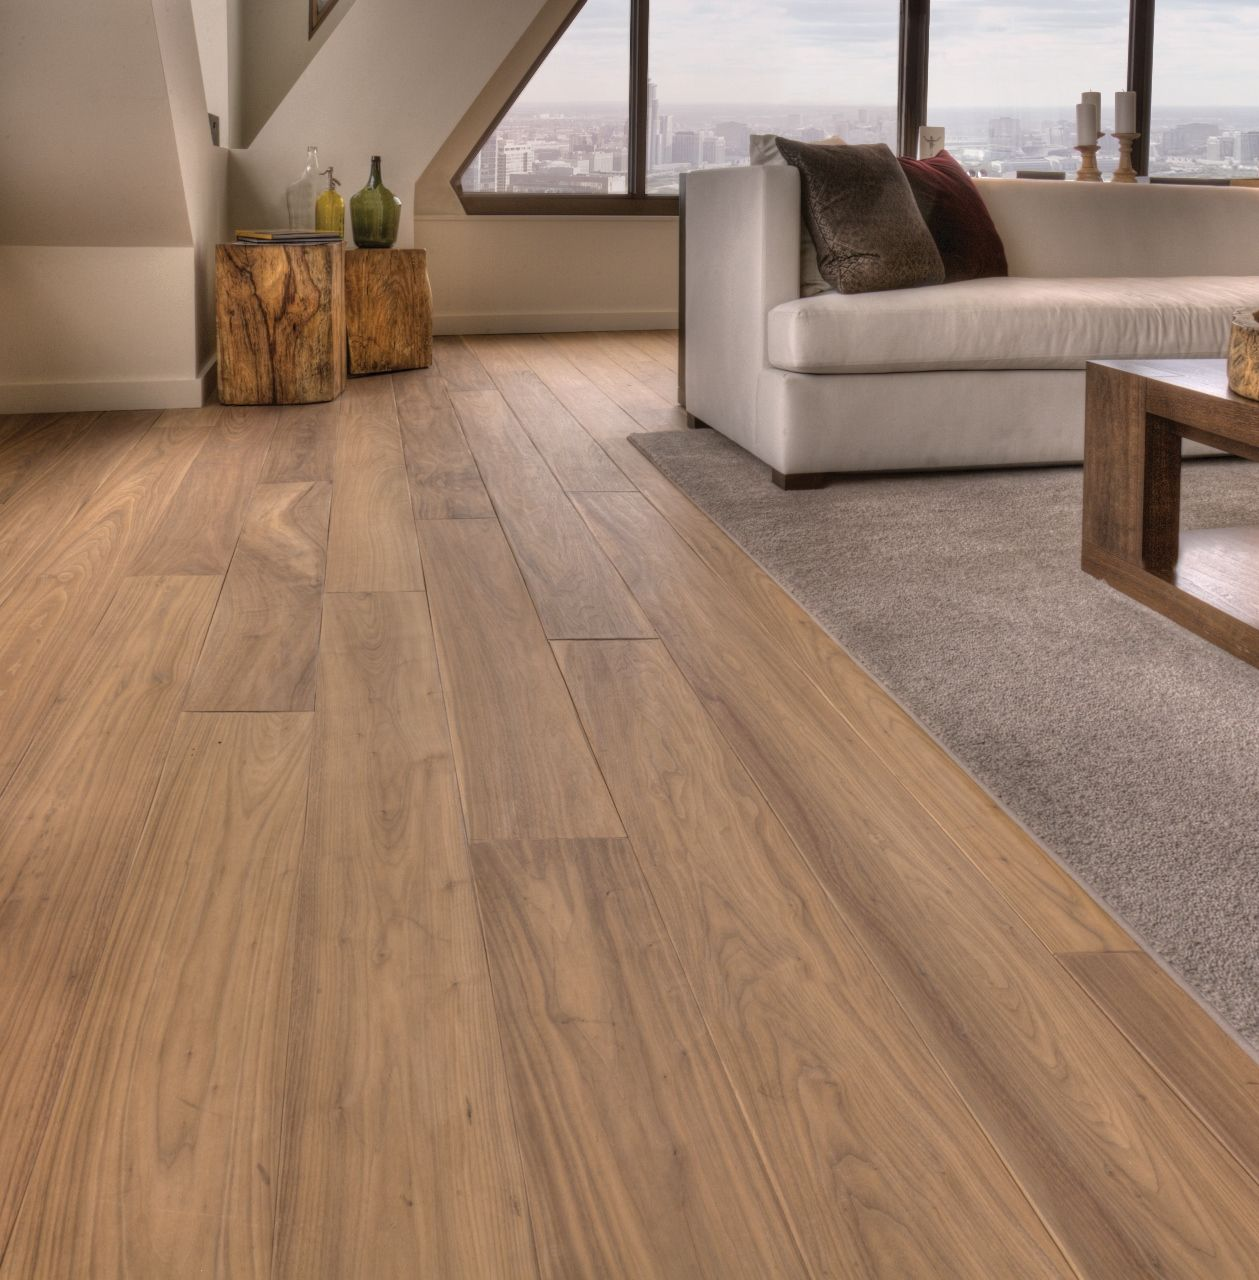 Carlisle wide plank flooring in distressed walnut i like this lighter color for a beach